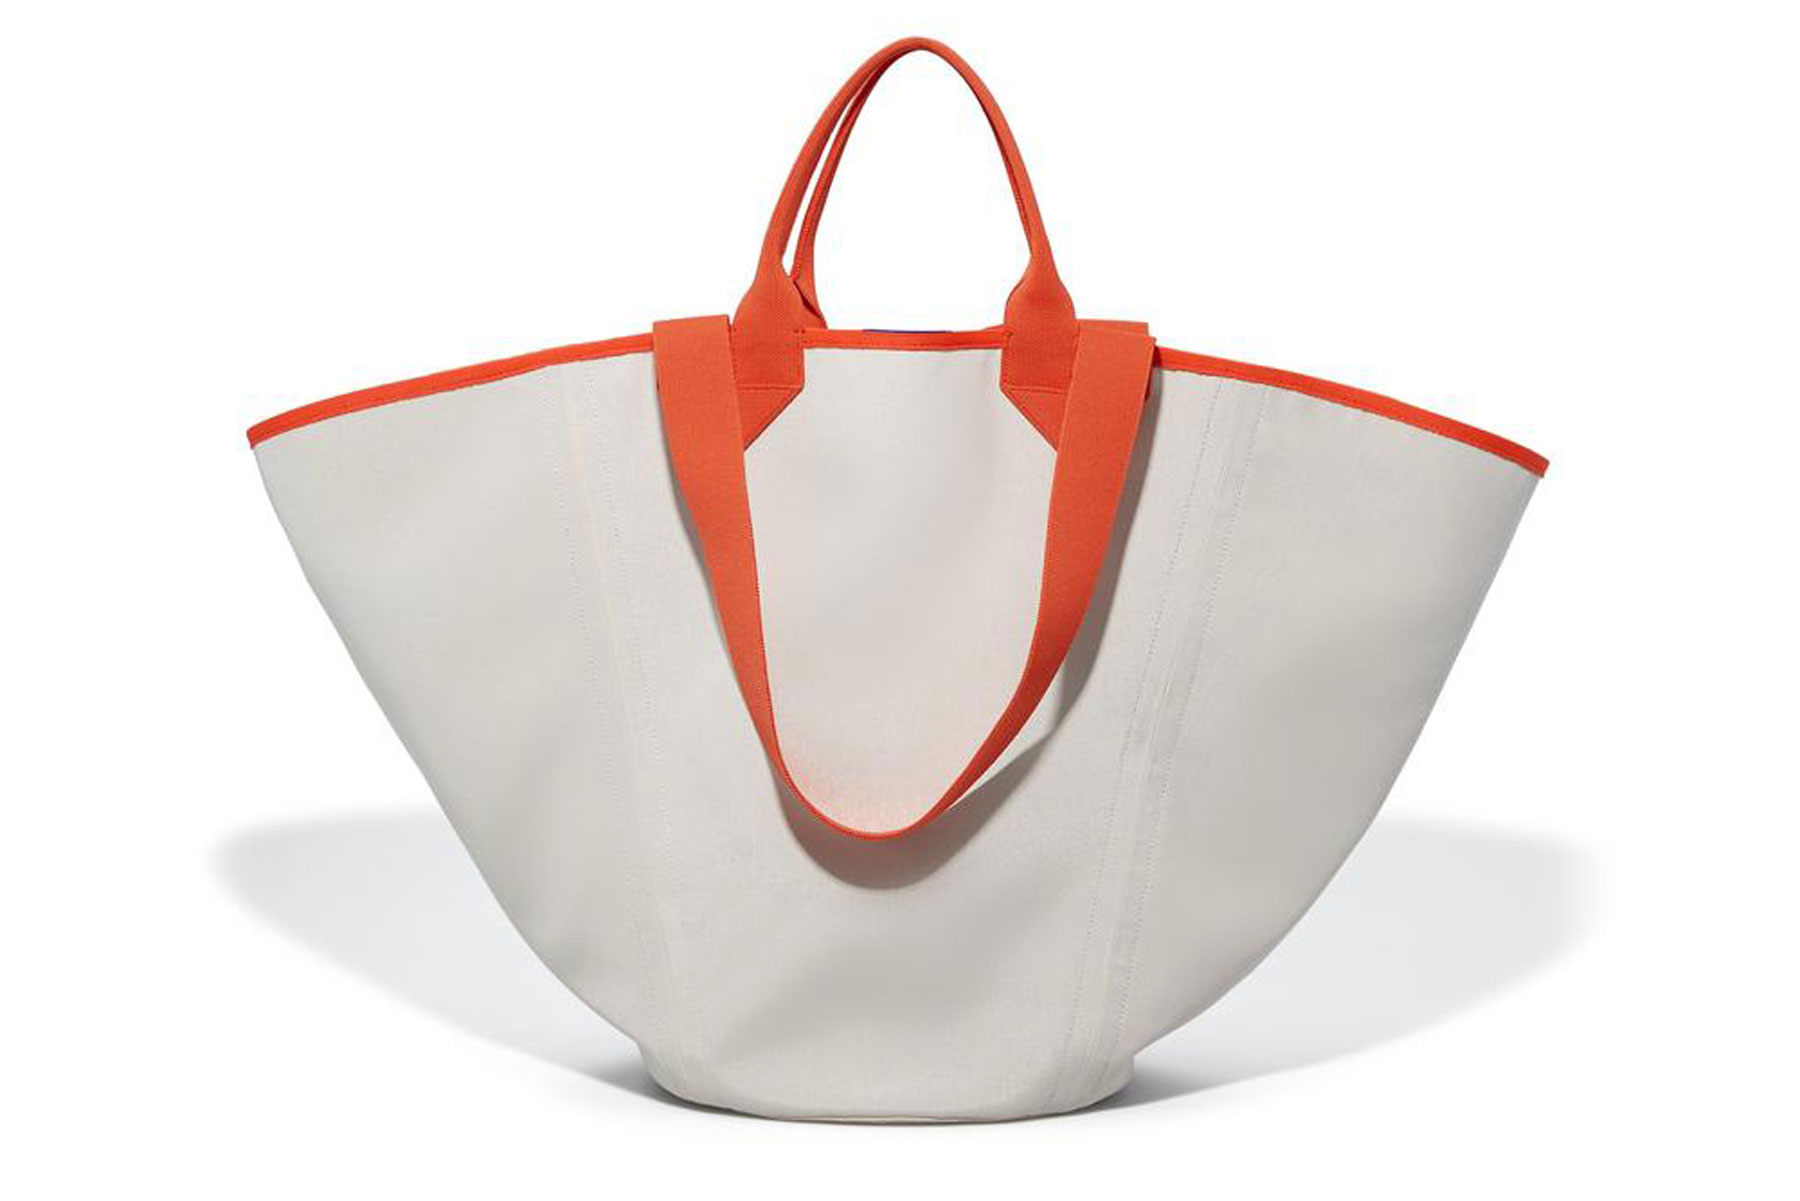 White and red beach bag tote